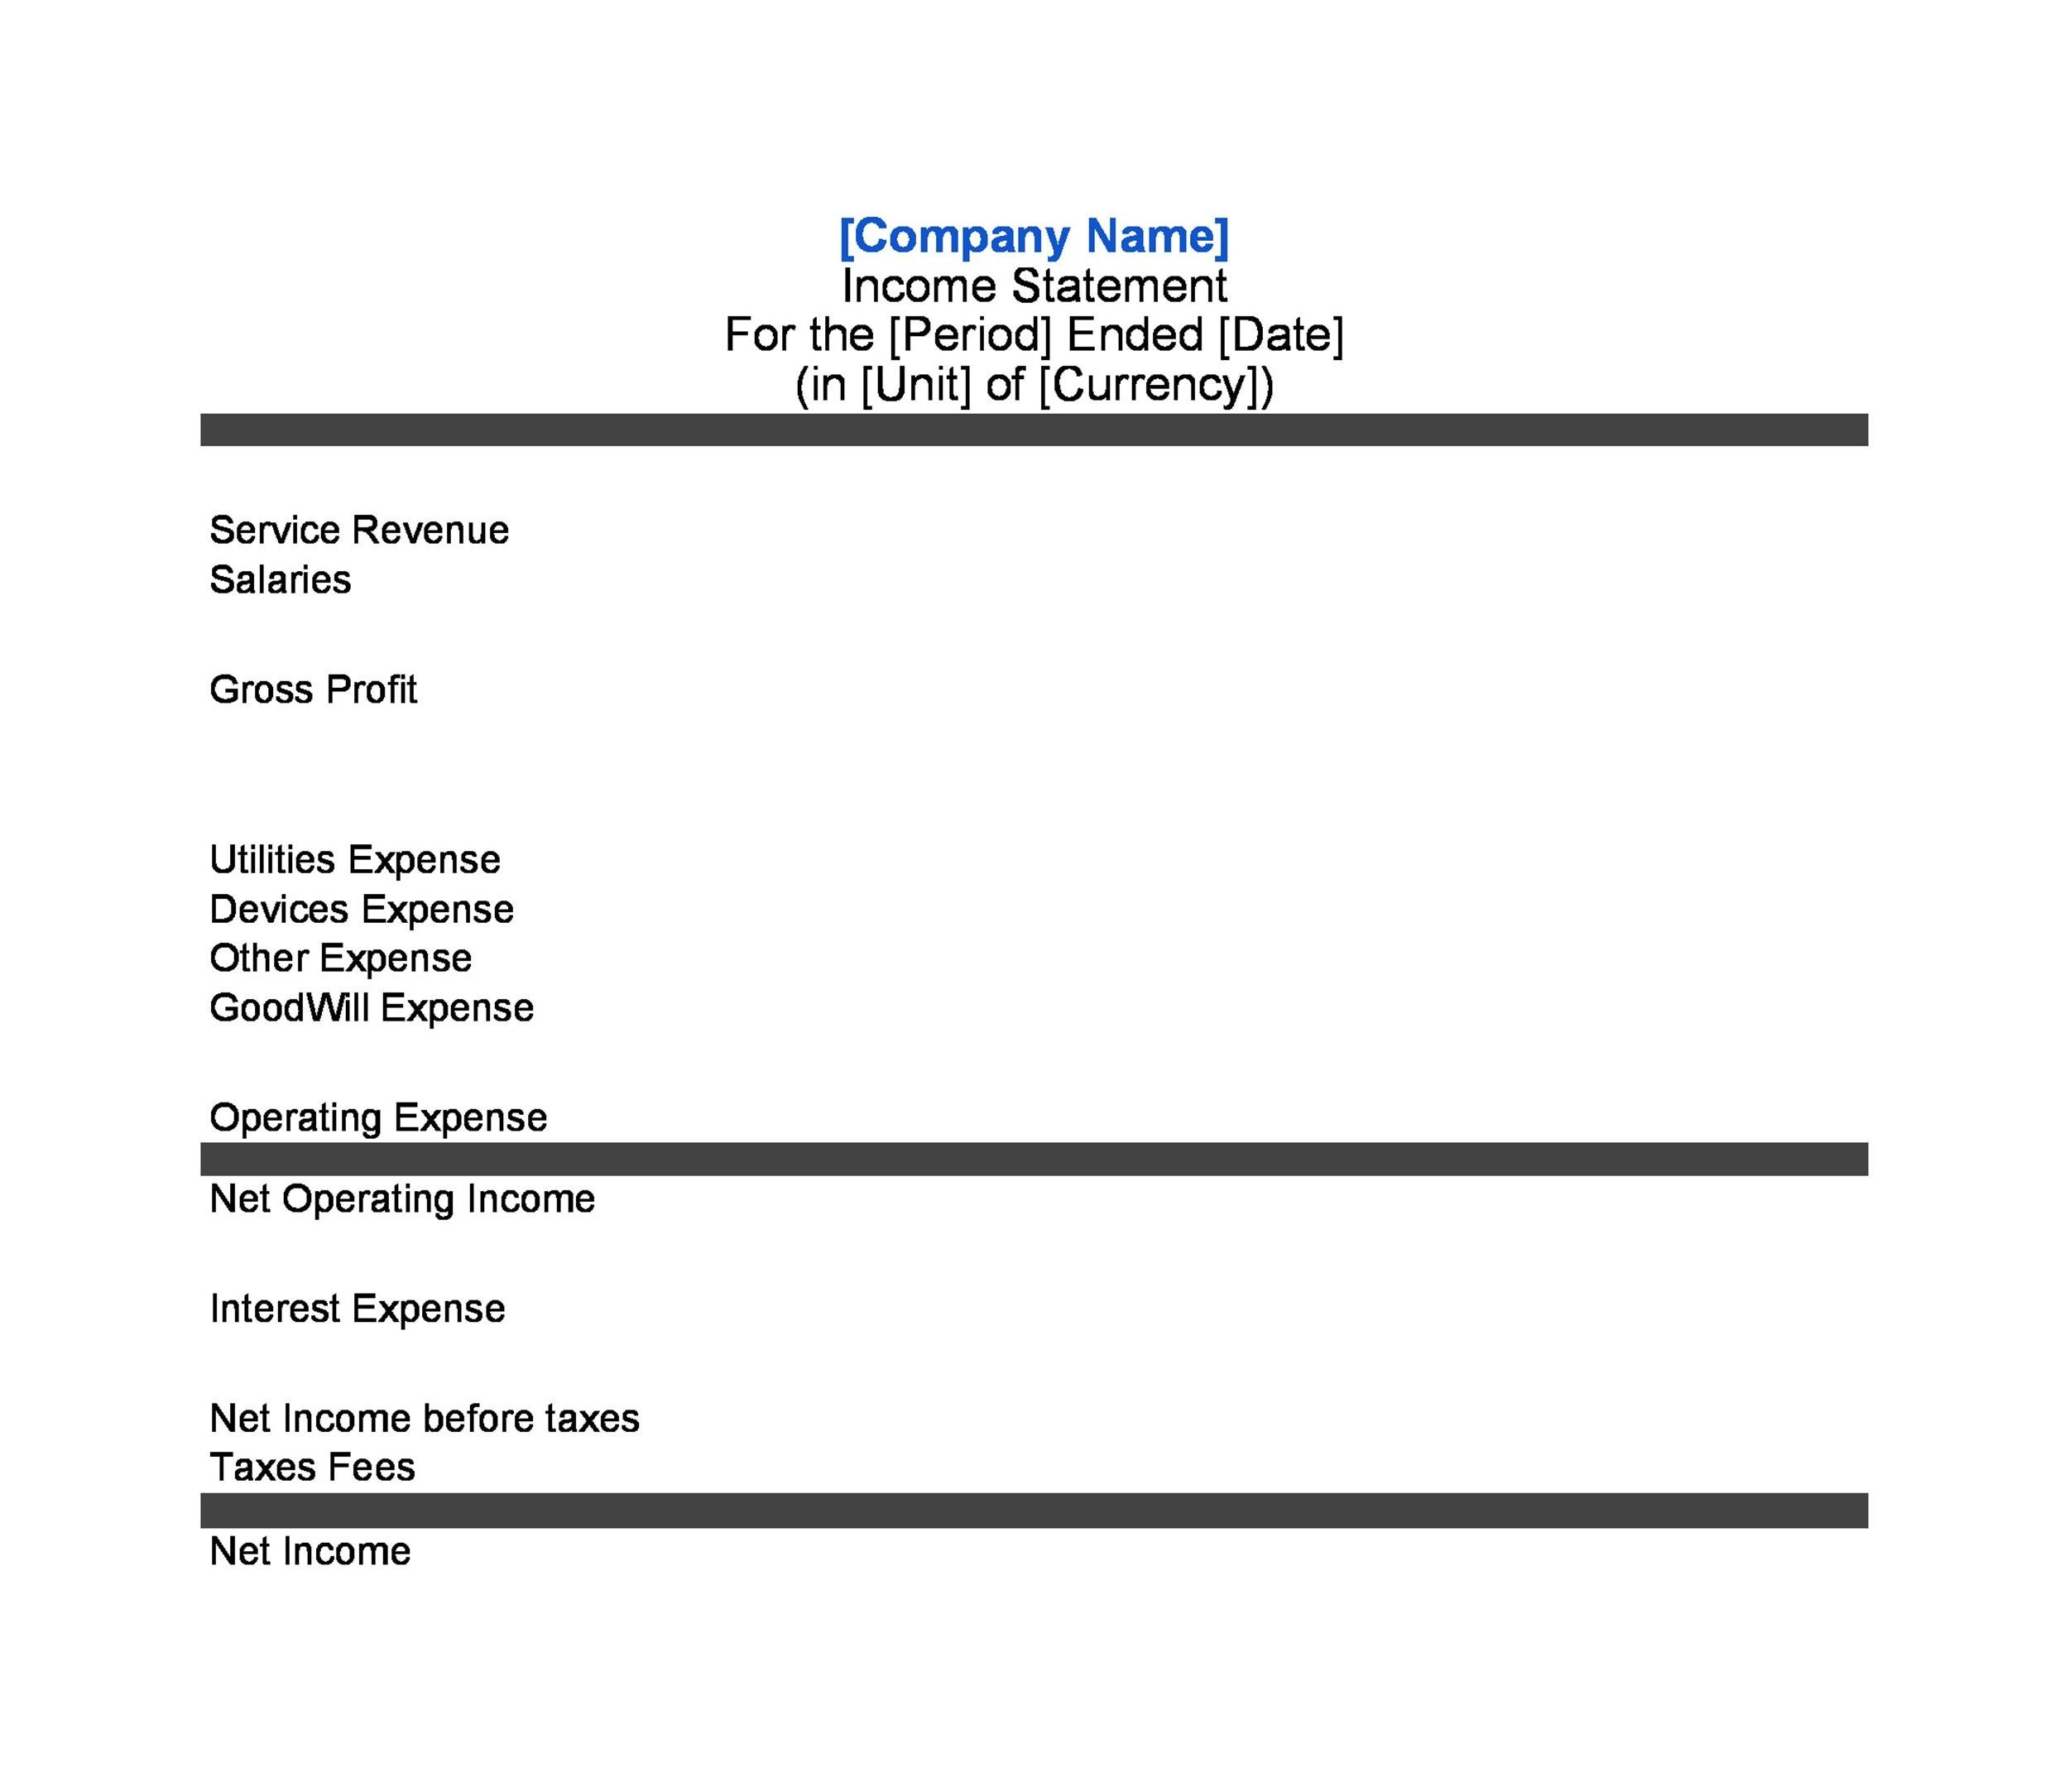 27 Income Statement Examples  Templates (Single/Multi step, Pro-forma) - income statement template